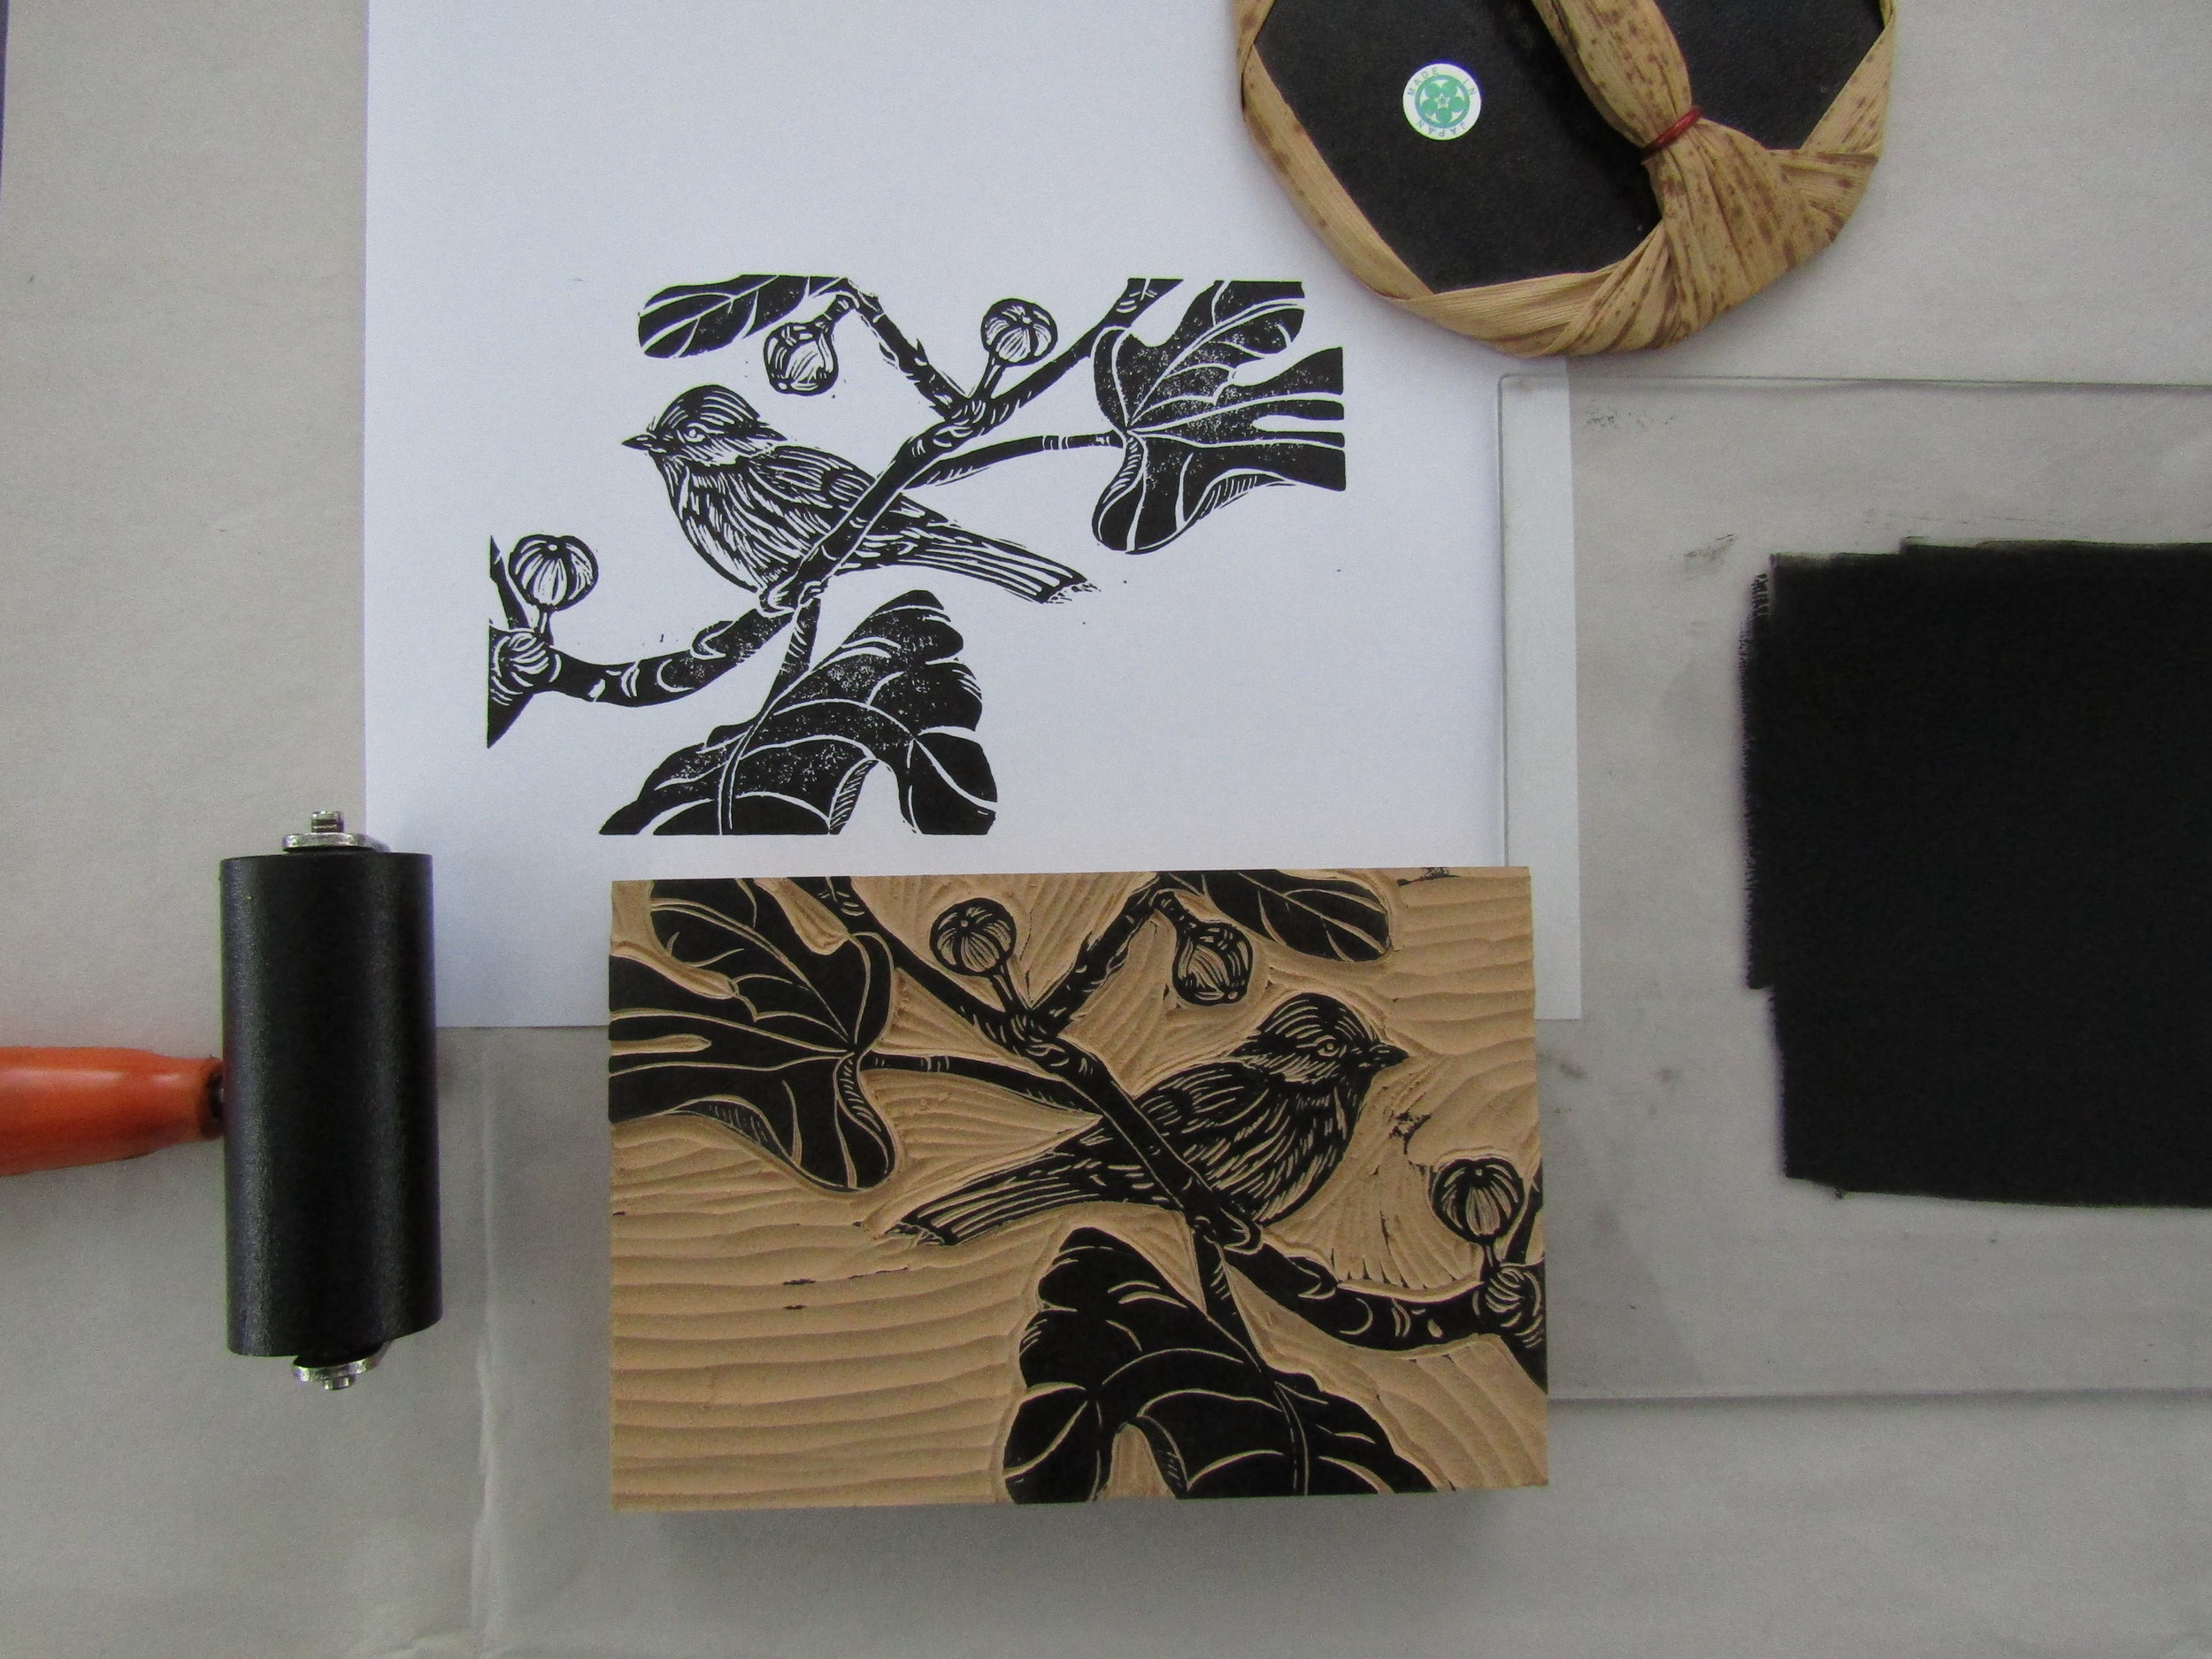 I proofed each block before printing the book on my letterpress. Here is a proof of the chickadee and fig tree image.